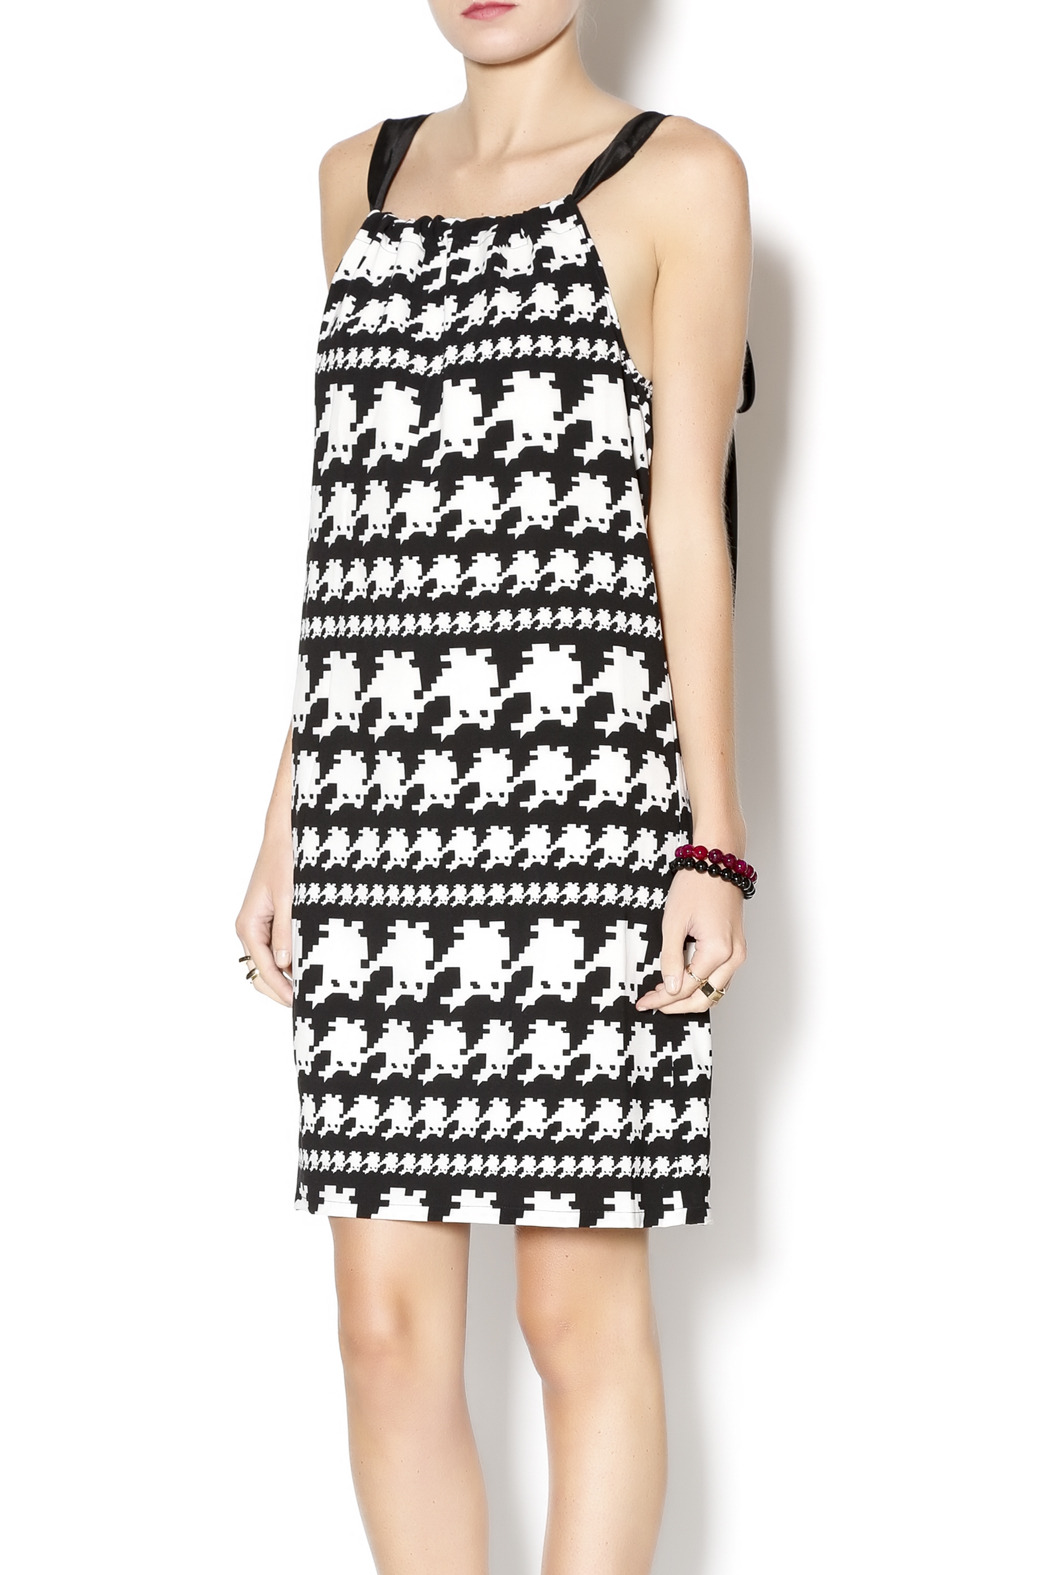 Jade Houndstooth Dress From Kentucky By The Farmers Daughter Boutique Shoptiques